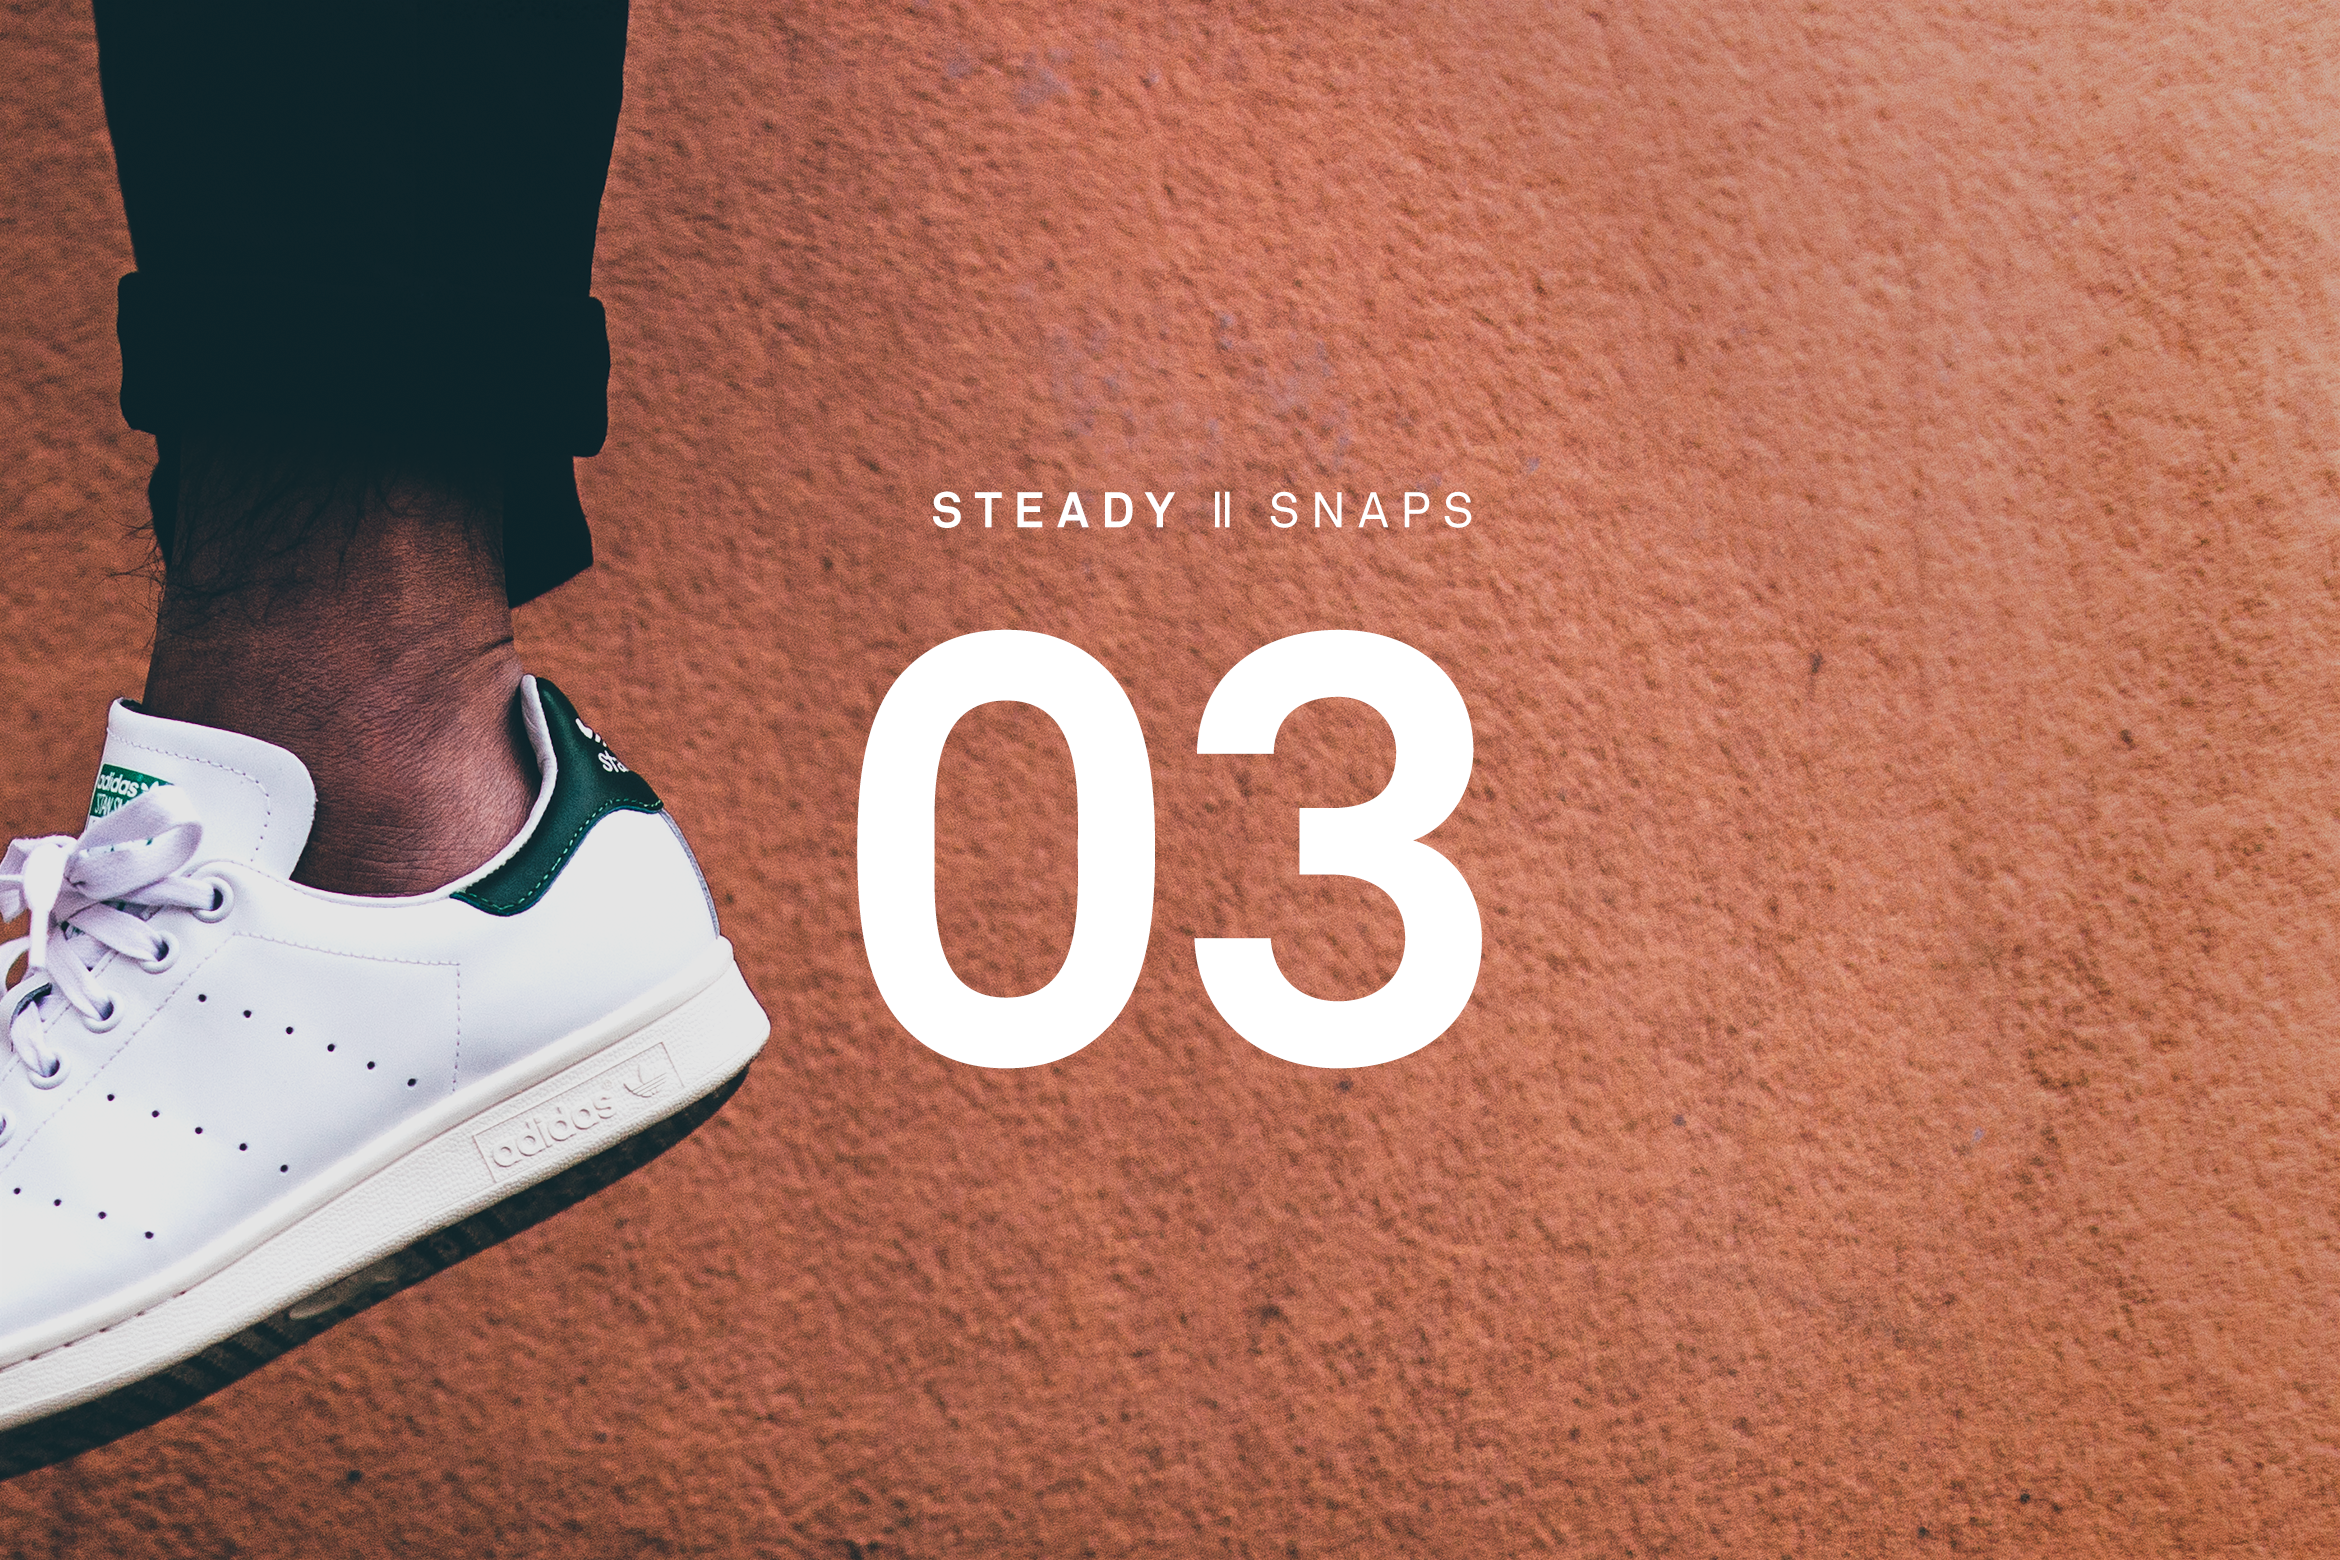 STEADY SNAPS: 03